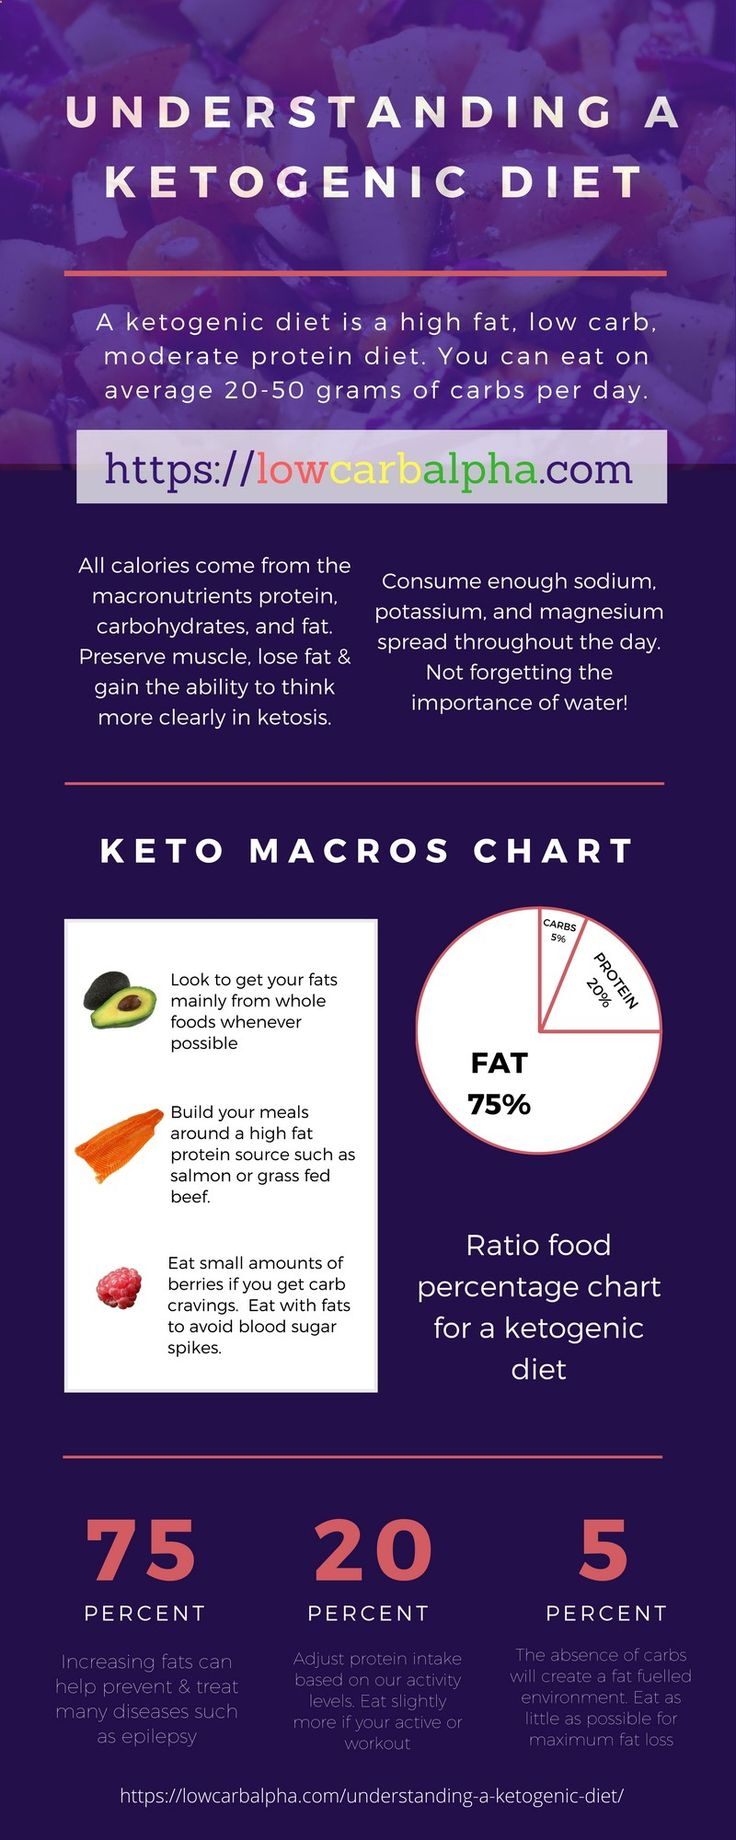 Best 25+ Foods high in fat ideas on Pinterest | High fat foods, Keto meal plan and Keto foods